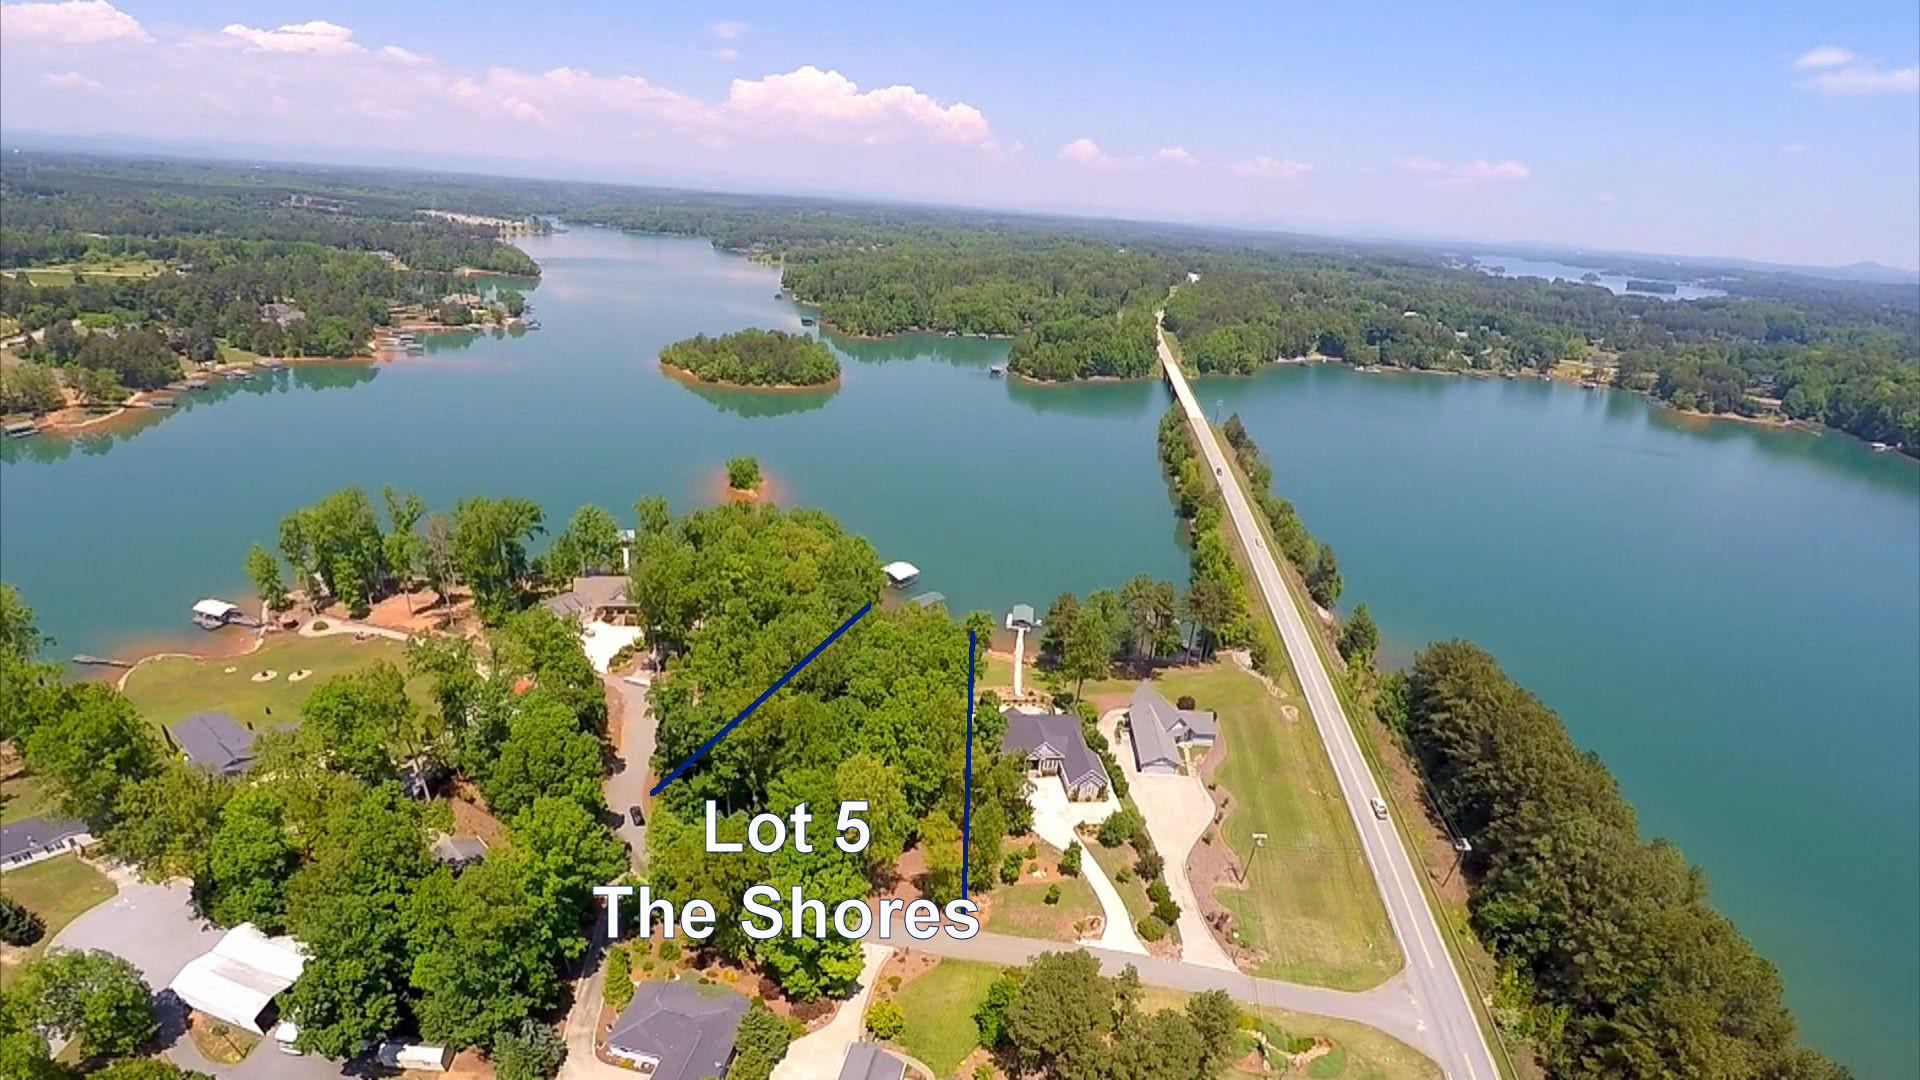 Lot 5 The Shores of Keowee